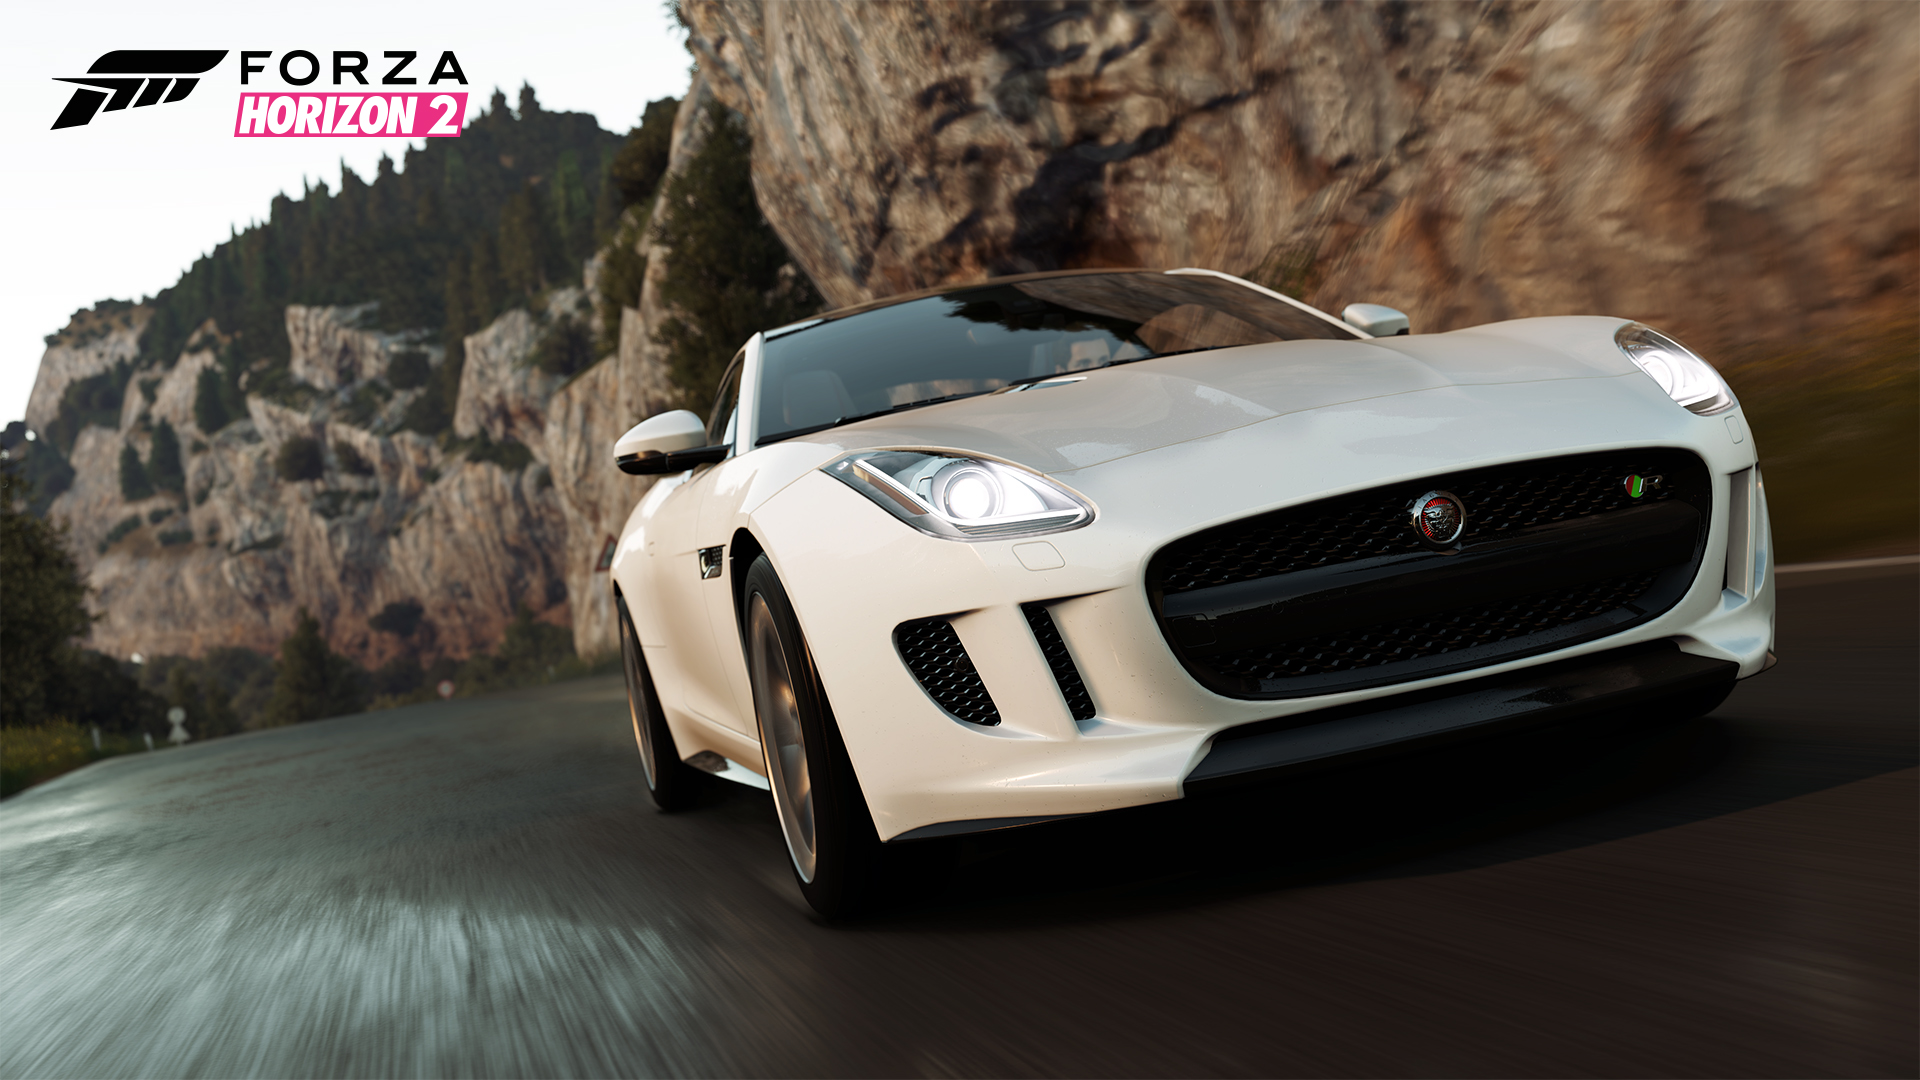 Test de Forza Horizon 2 Xbox One